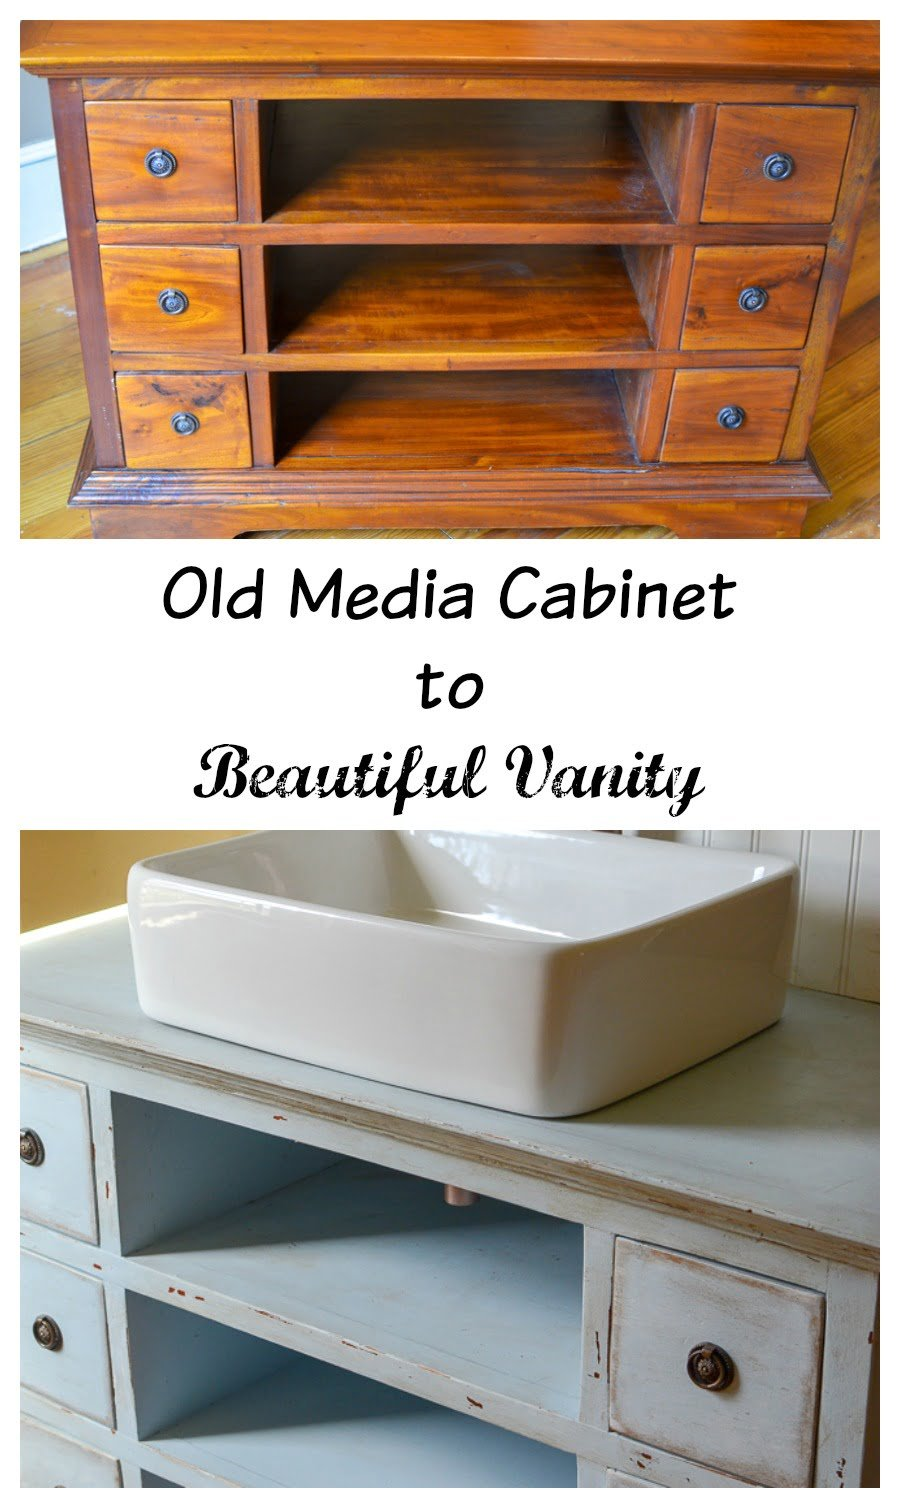 an old media cabinet gets repurposed into a vanity